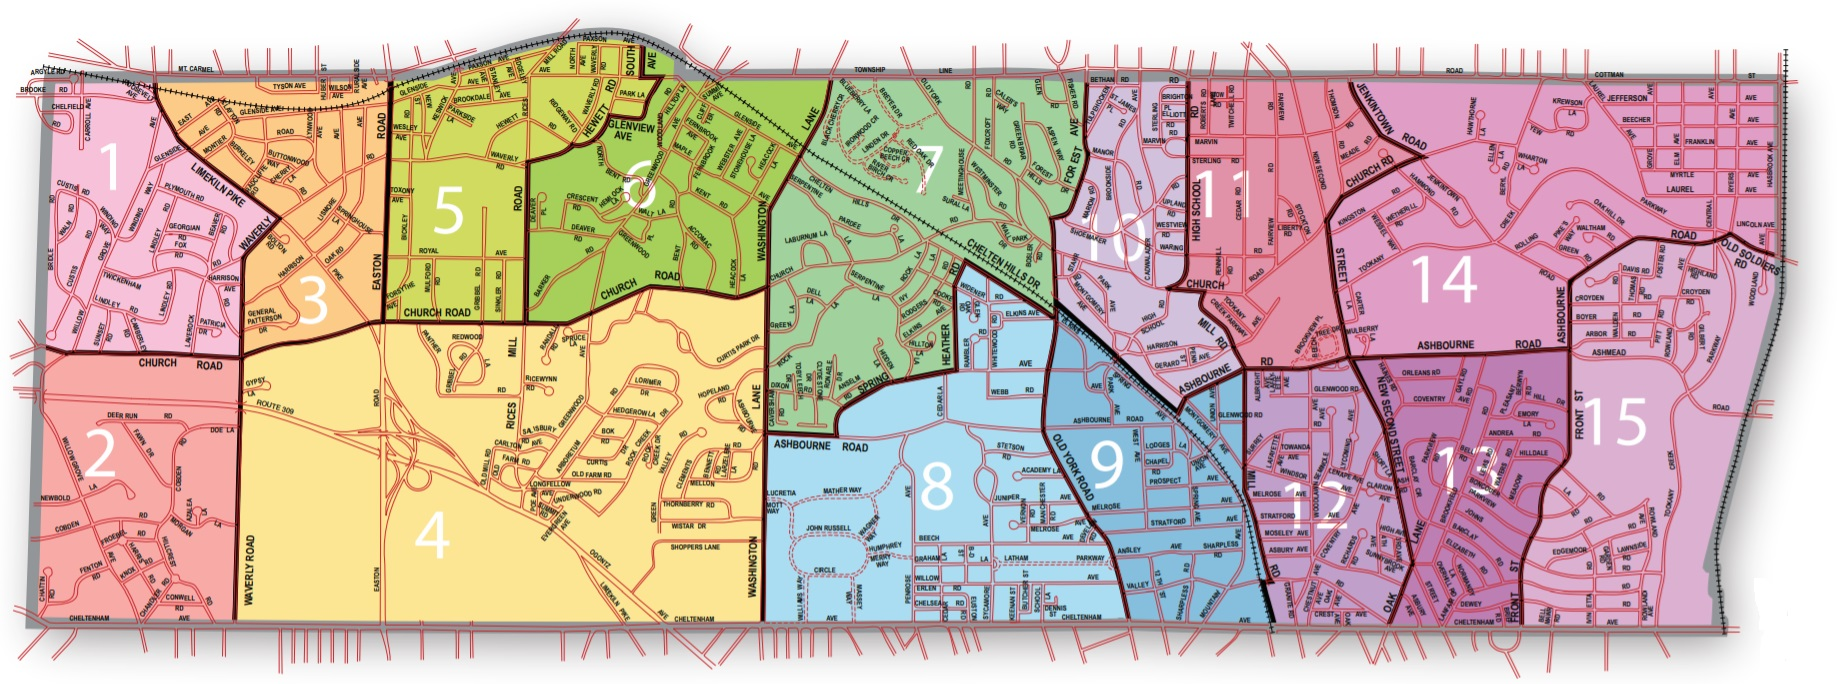 Cheltenham Township - Leaf Collection Map.jpg